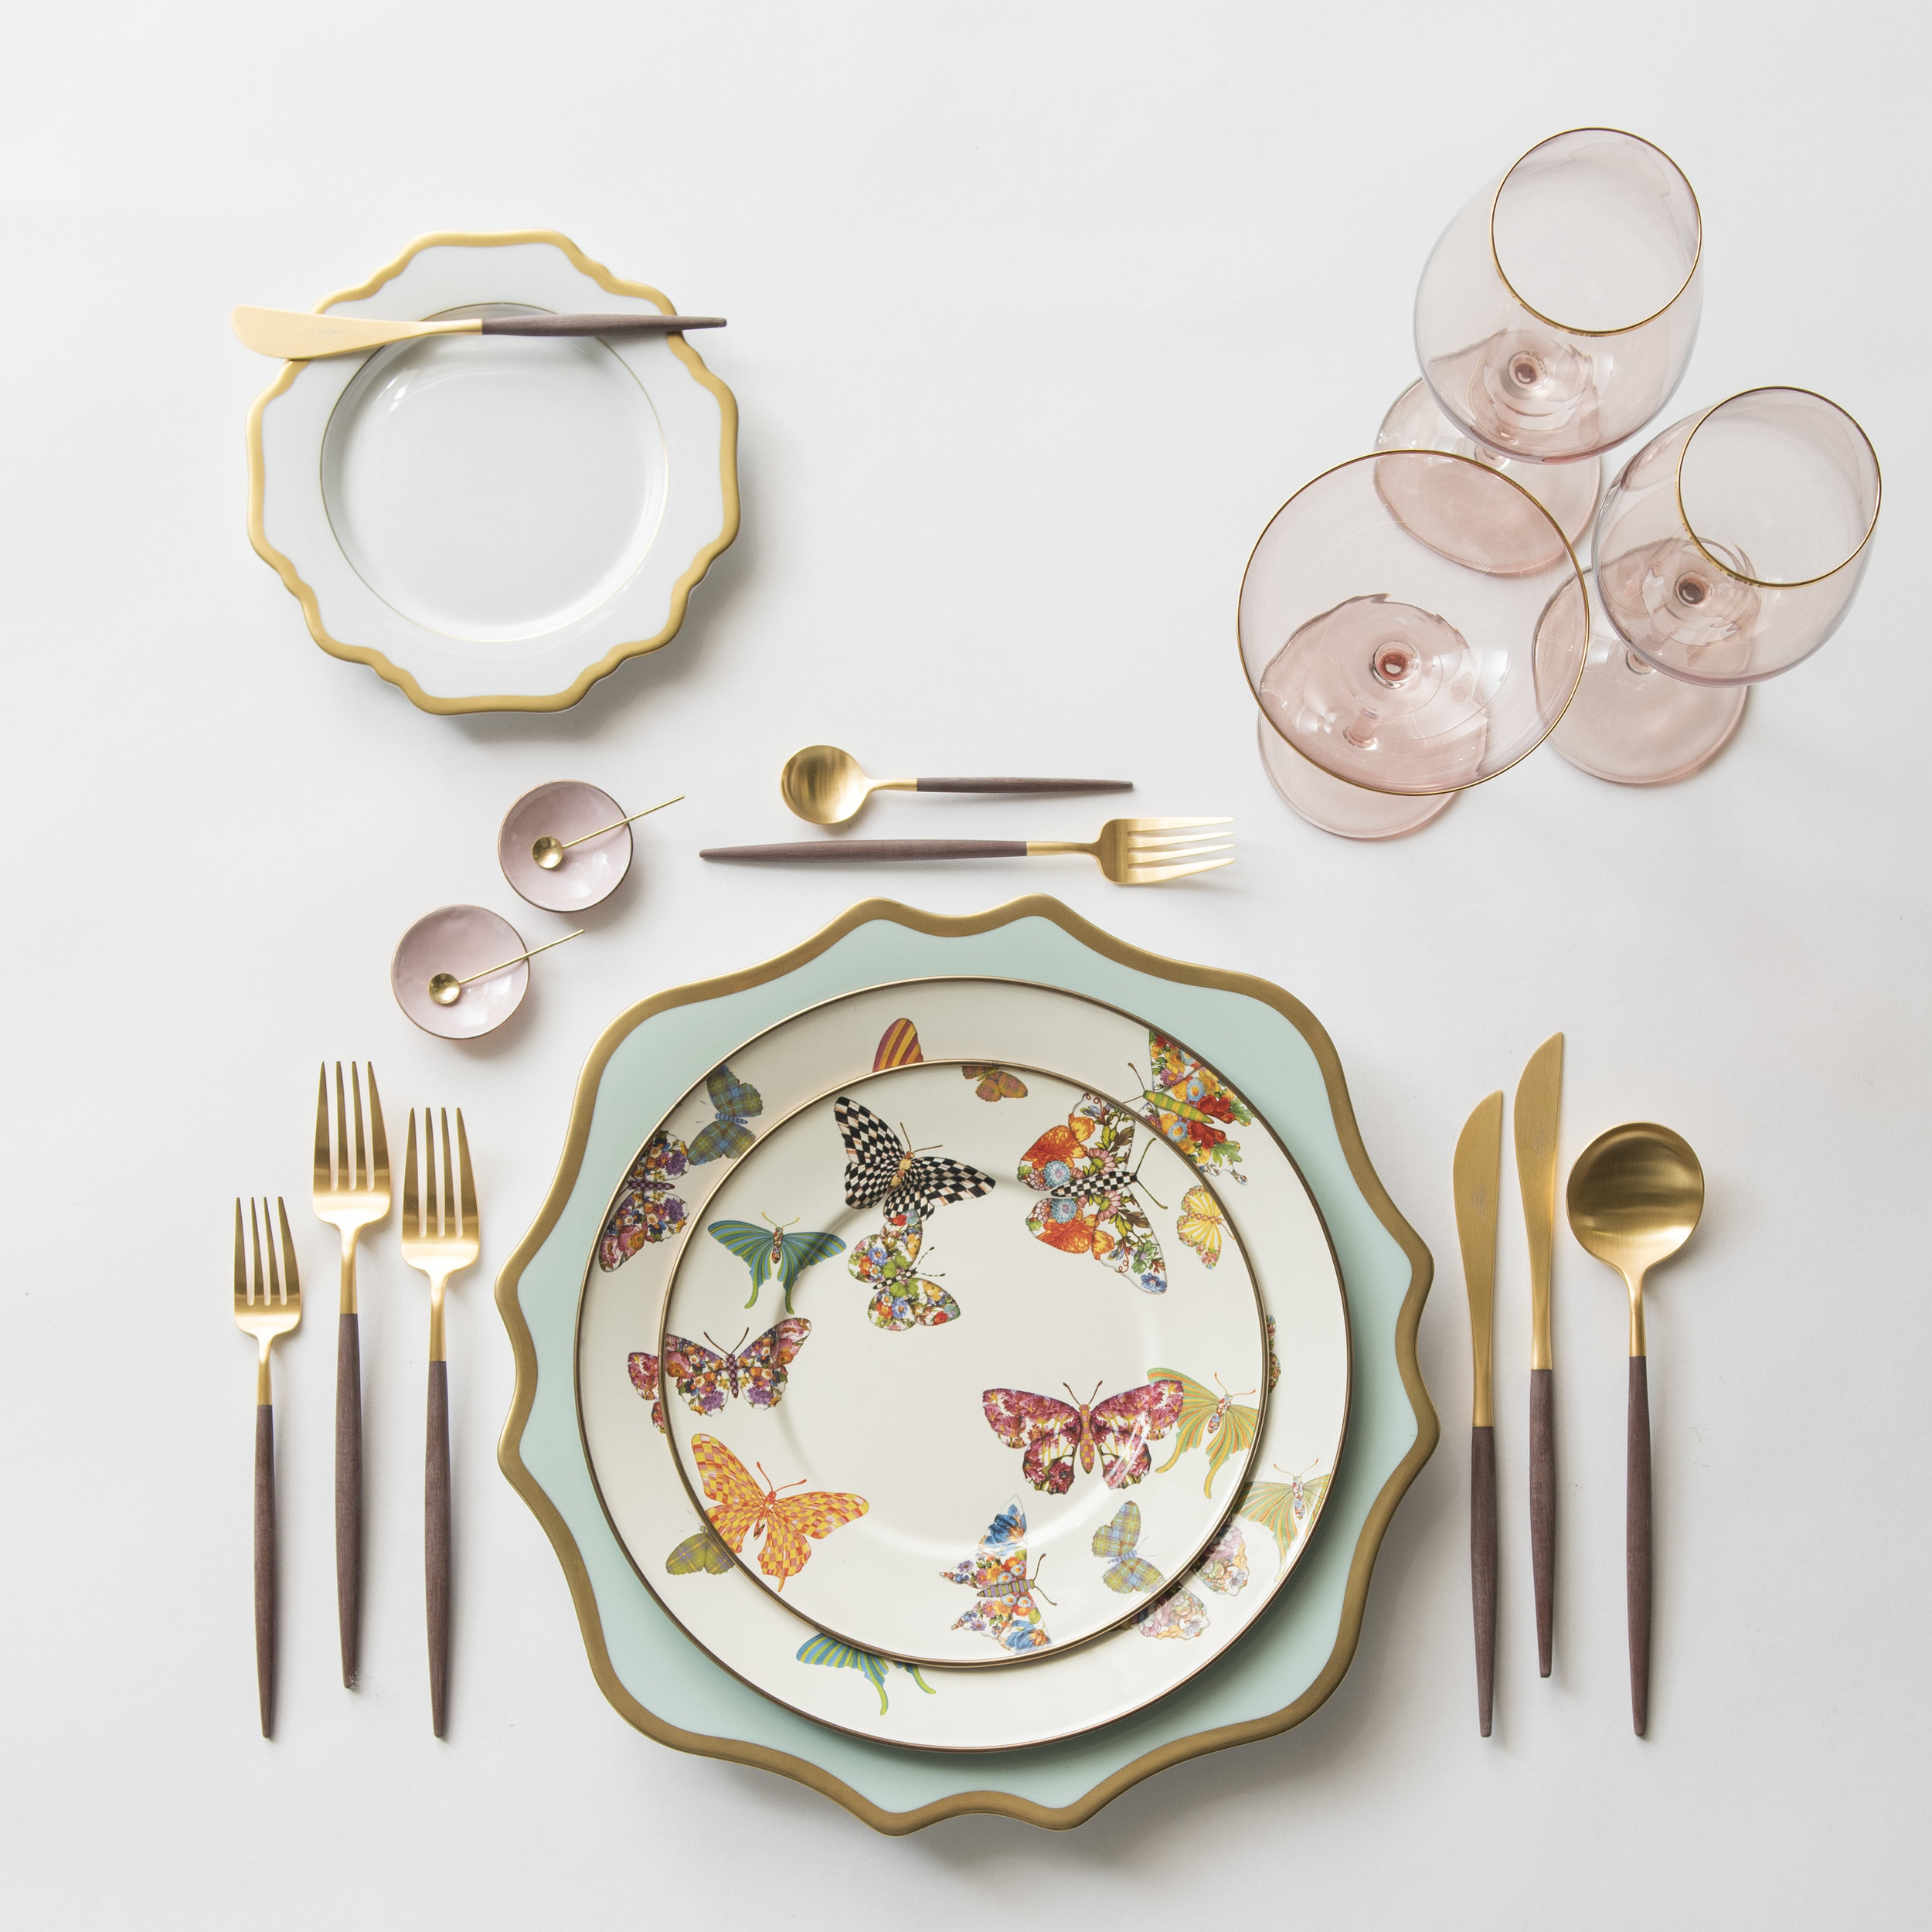 RENT: Anna Weatherley Chargers in Aqua Sky/Gold + Anna Weatherley Dinnerware in White/Gold + MacKenzie-Childs Butterfly Garden Collection + Goa Flatware in Brushed 24k Gold/Wood + Bella 24k Gold Rimmed Stemware in Blush + Pink Enamel Salt Cellars + Tiny Gold Spoons  SHOP:Anna Weatherley Chargers in Aqua Sky/Gold + Anna Weatherley Dinnerware in White/Gold + Goa Flatware in Brushed 24k Gold/Wood + Bella 24k Gold Rimmed Stemware in Blush + Pink Enamel Salt Cellars + Tiny Gold Spoons